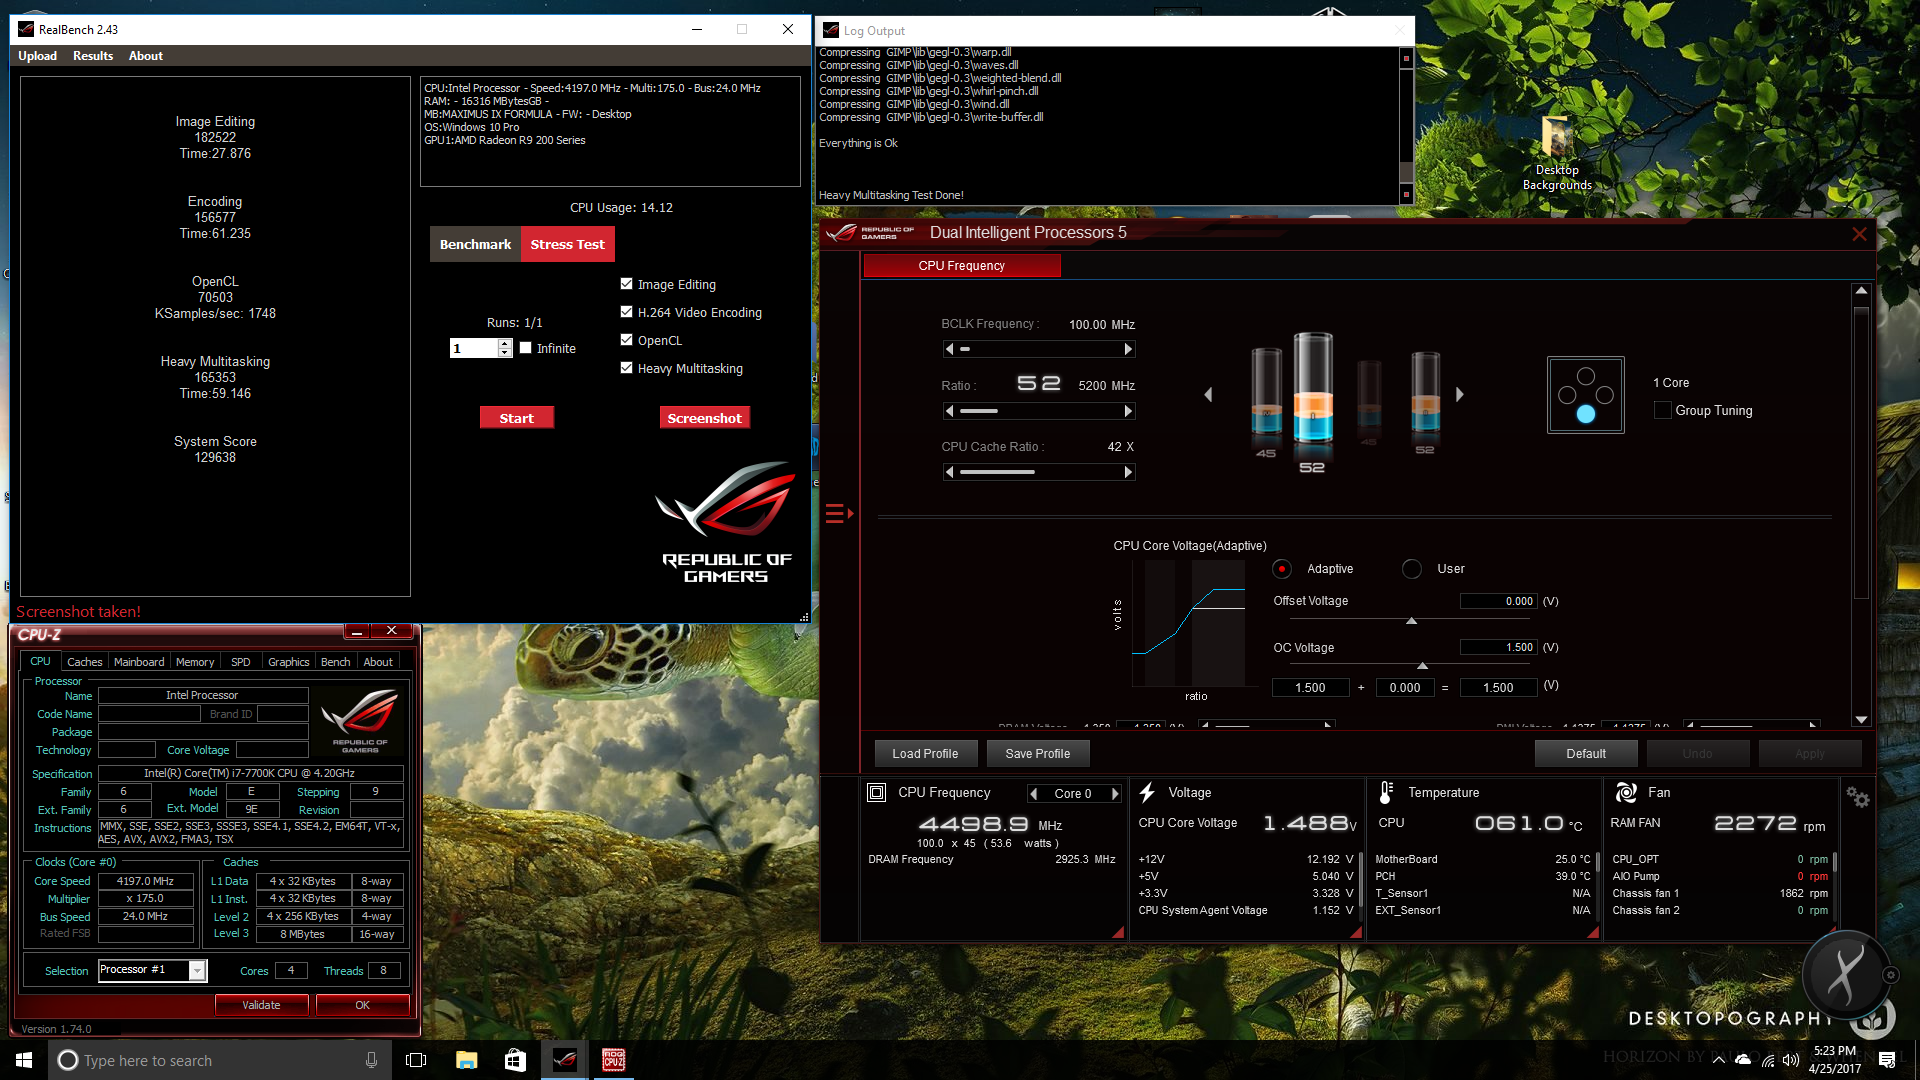 ASUS AI Suite 3 Rocks: i7 7700K Overclocked to 5 2 GHz with 5-way